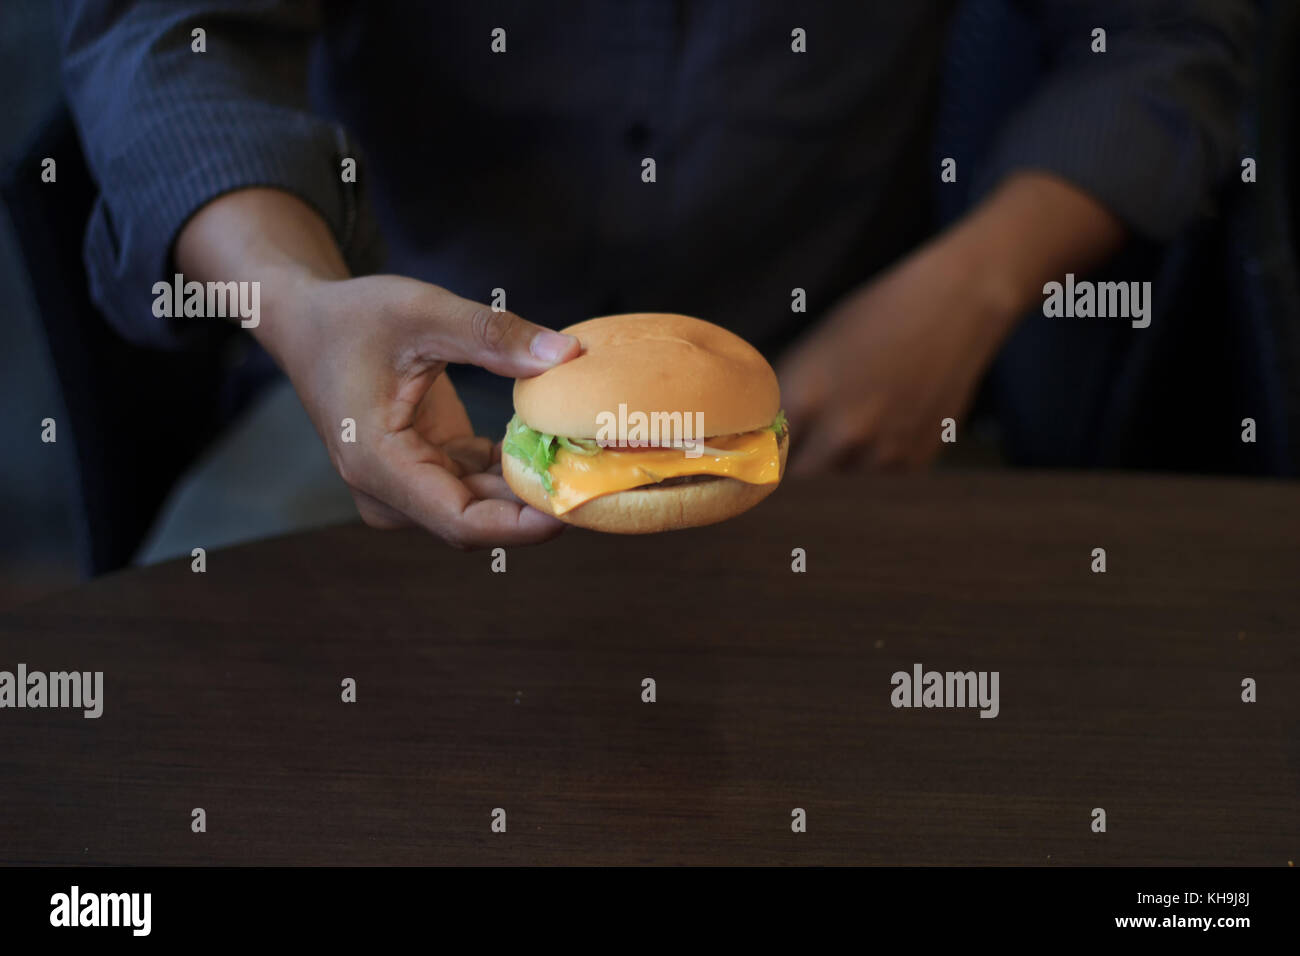 Young man hands fast food burger select focus and blur background low light or underexposed, Young man holds burger - Stock Image